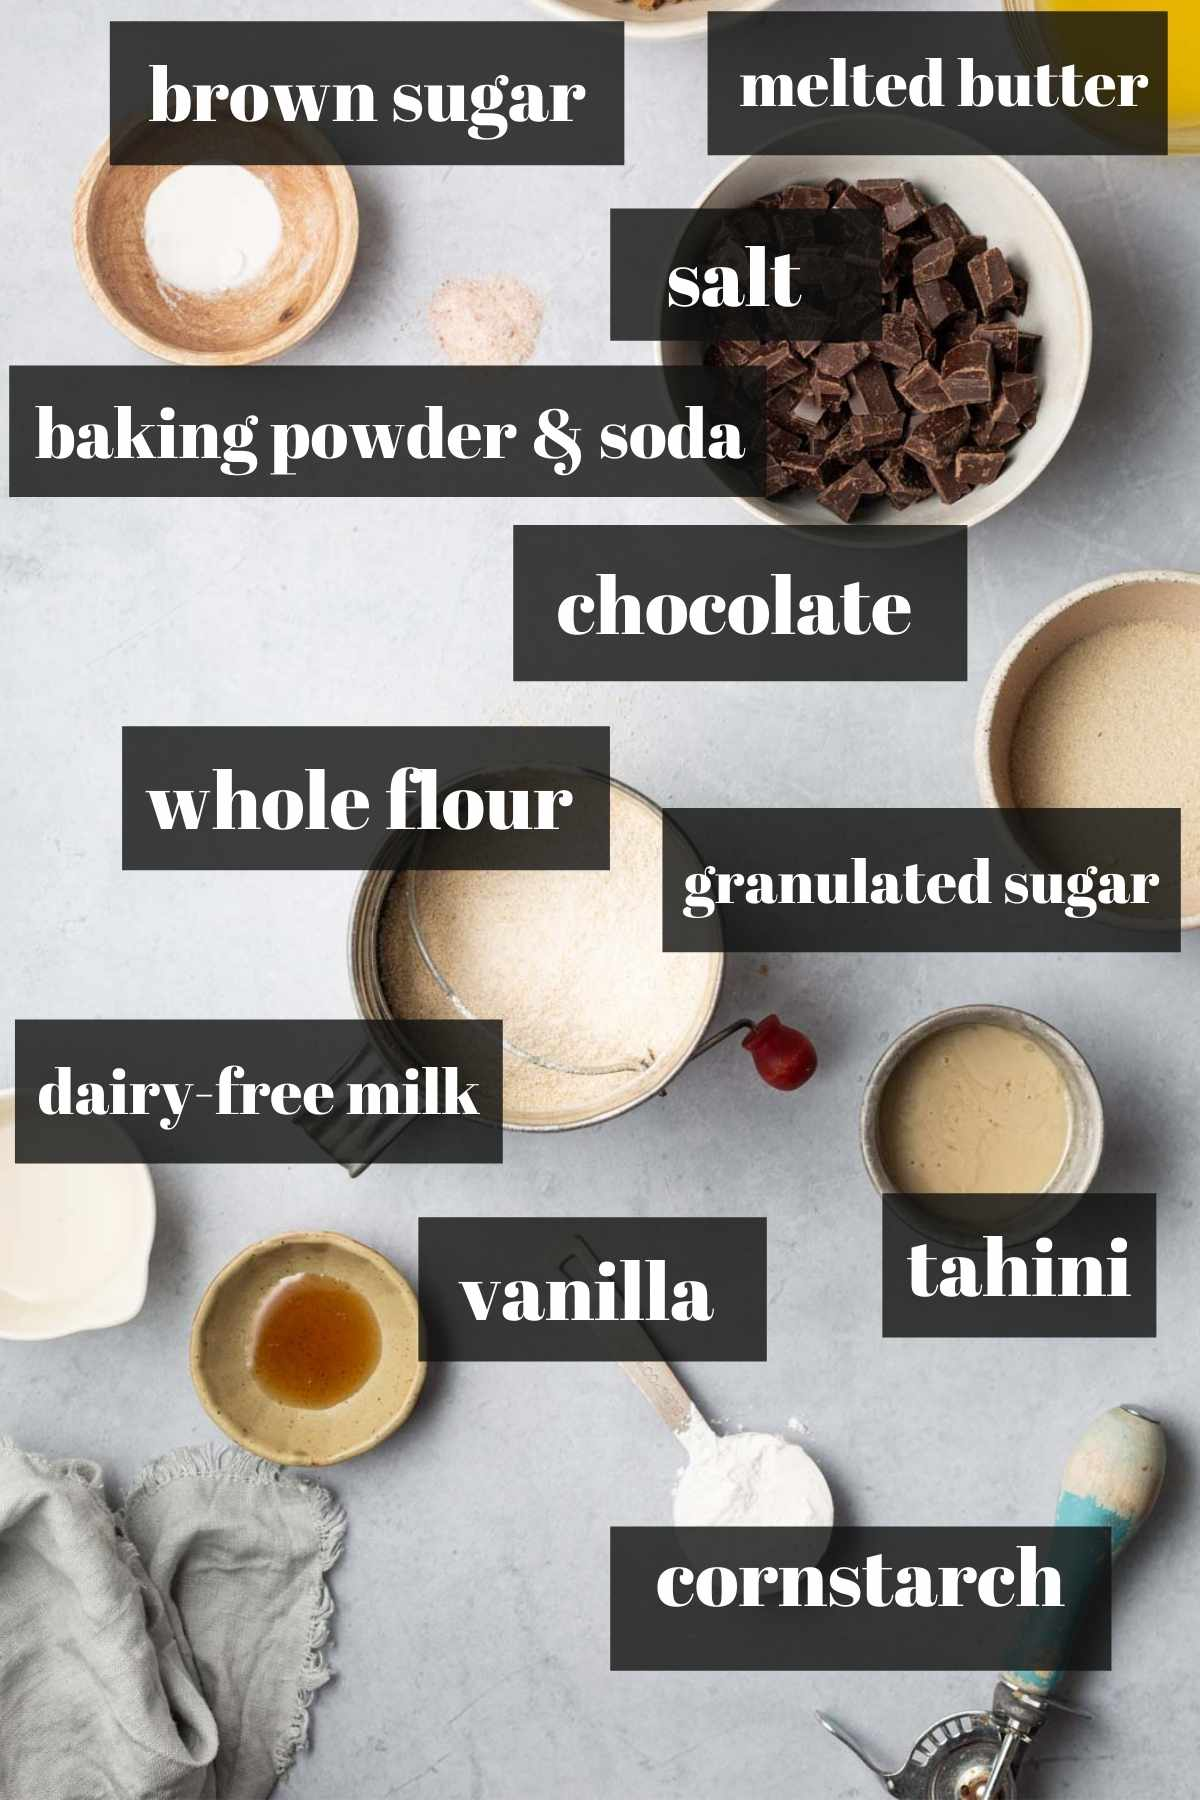 Labeled chocolate Chip cookie ingredients on a tray.